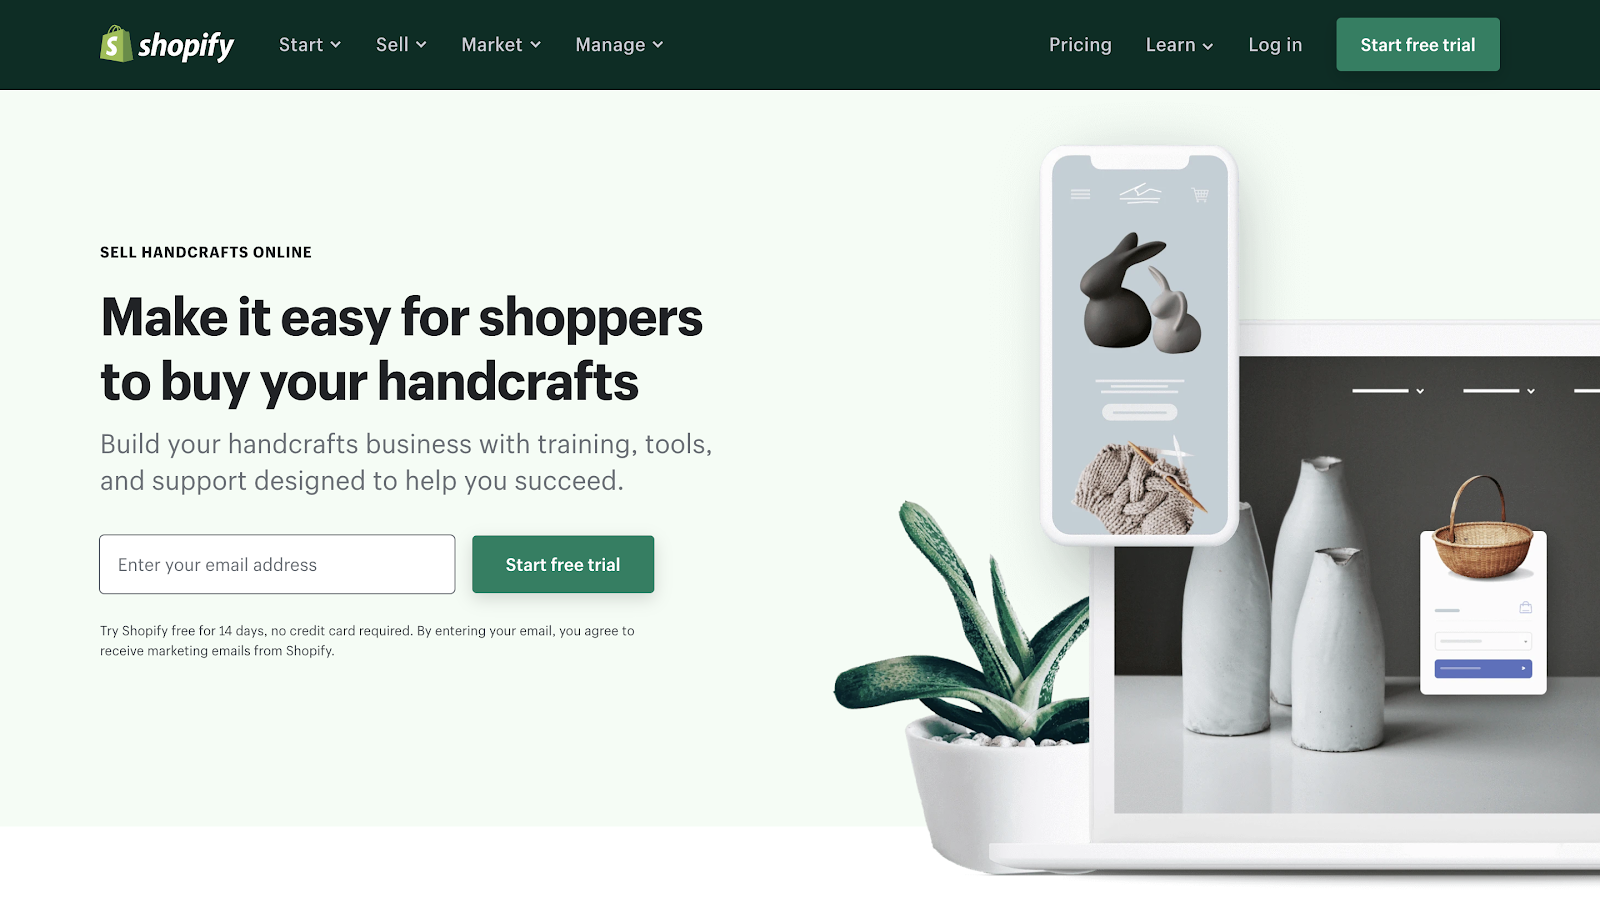 Sell Handcrafted Products with Shopify